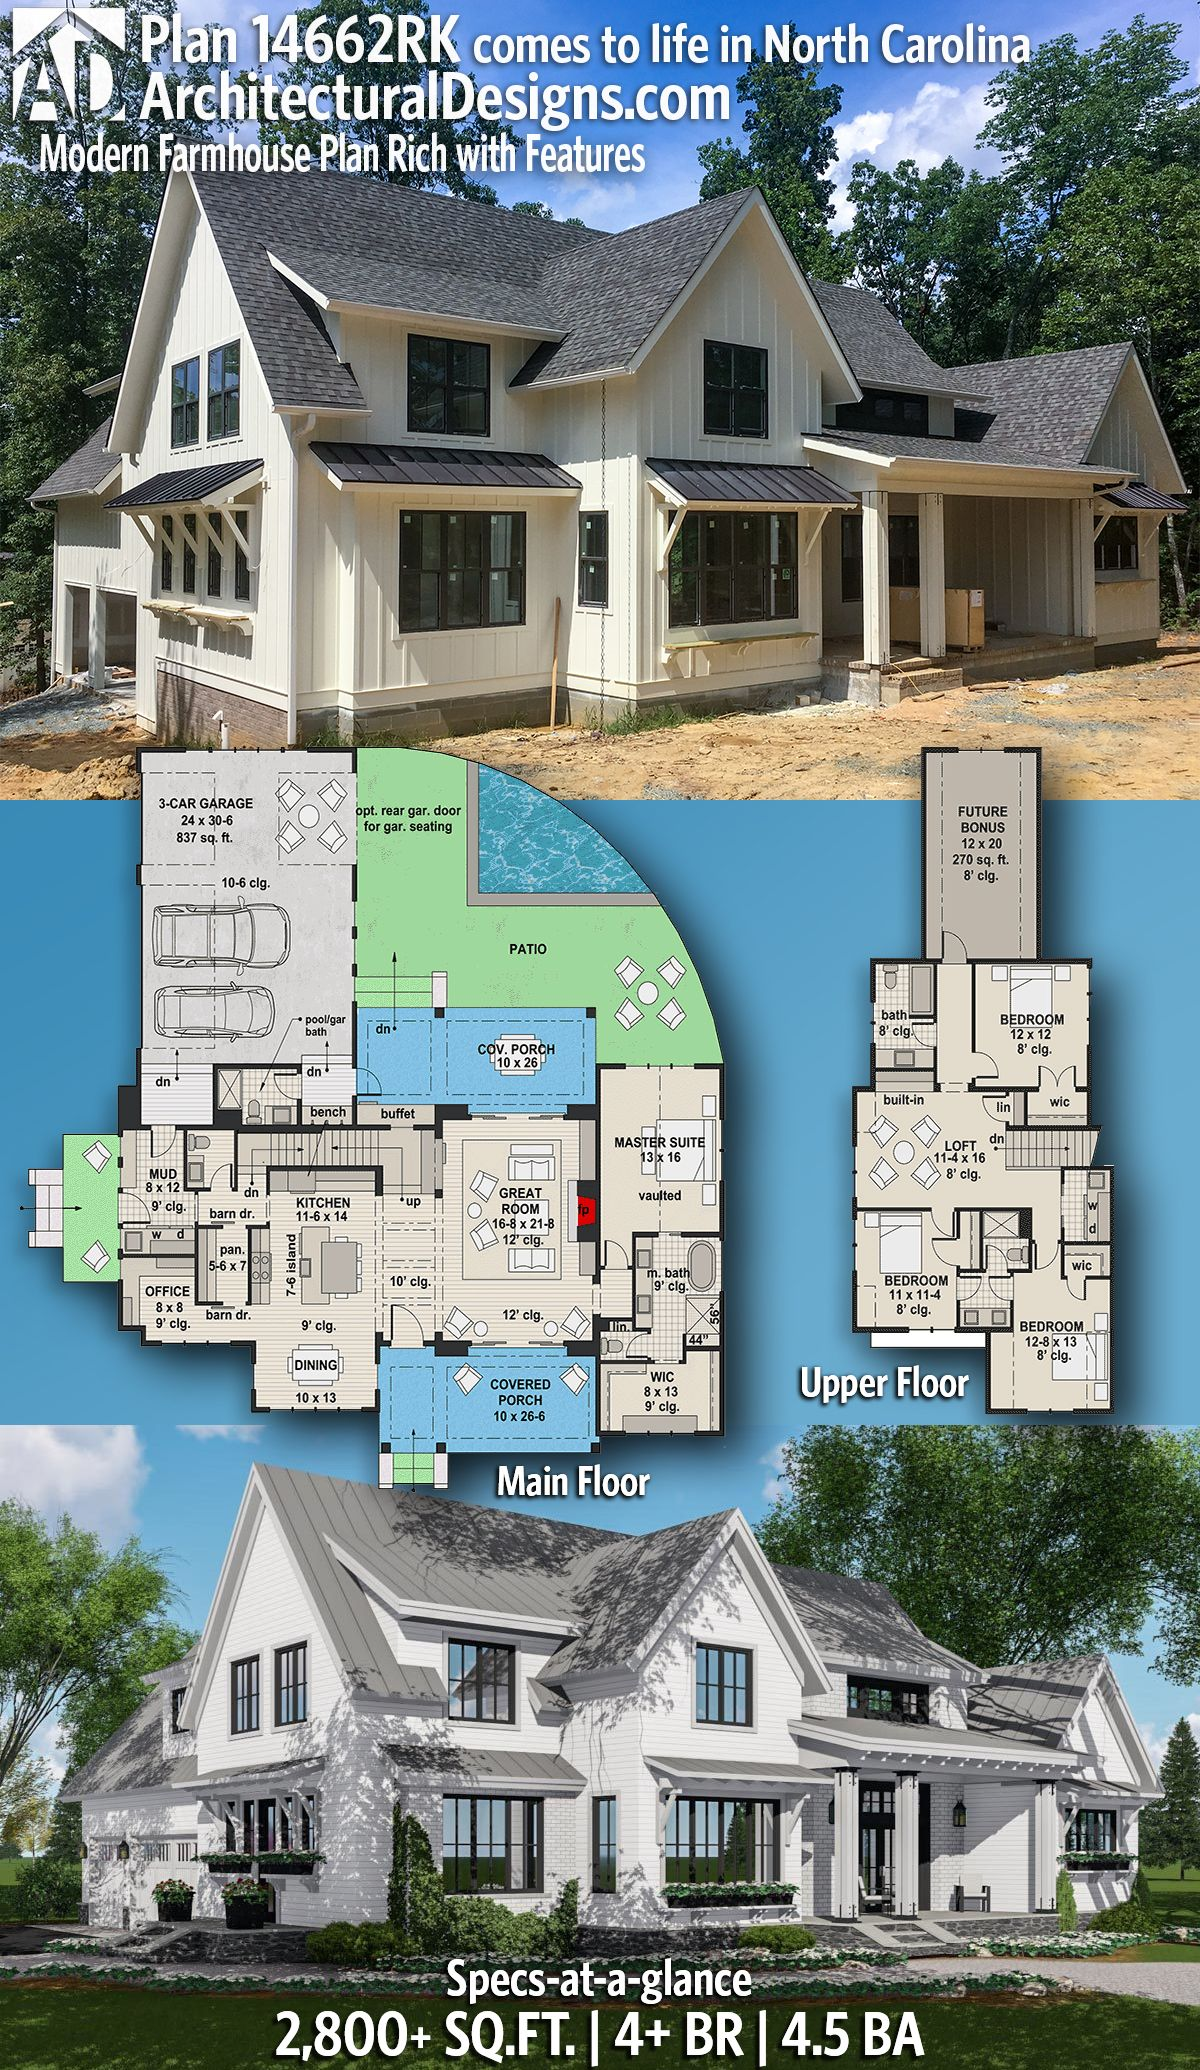 Farmhouse Architecture Features Plan 14662rk Modern Farmhouse Plan Rich With Features In